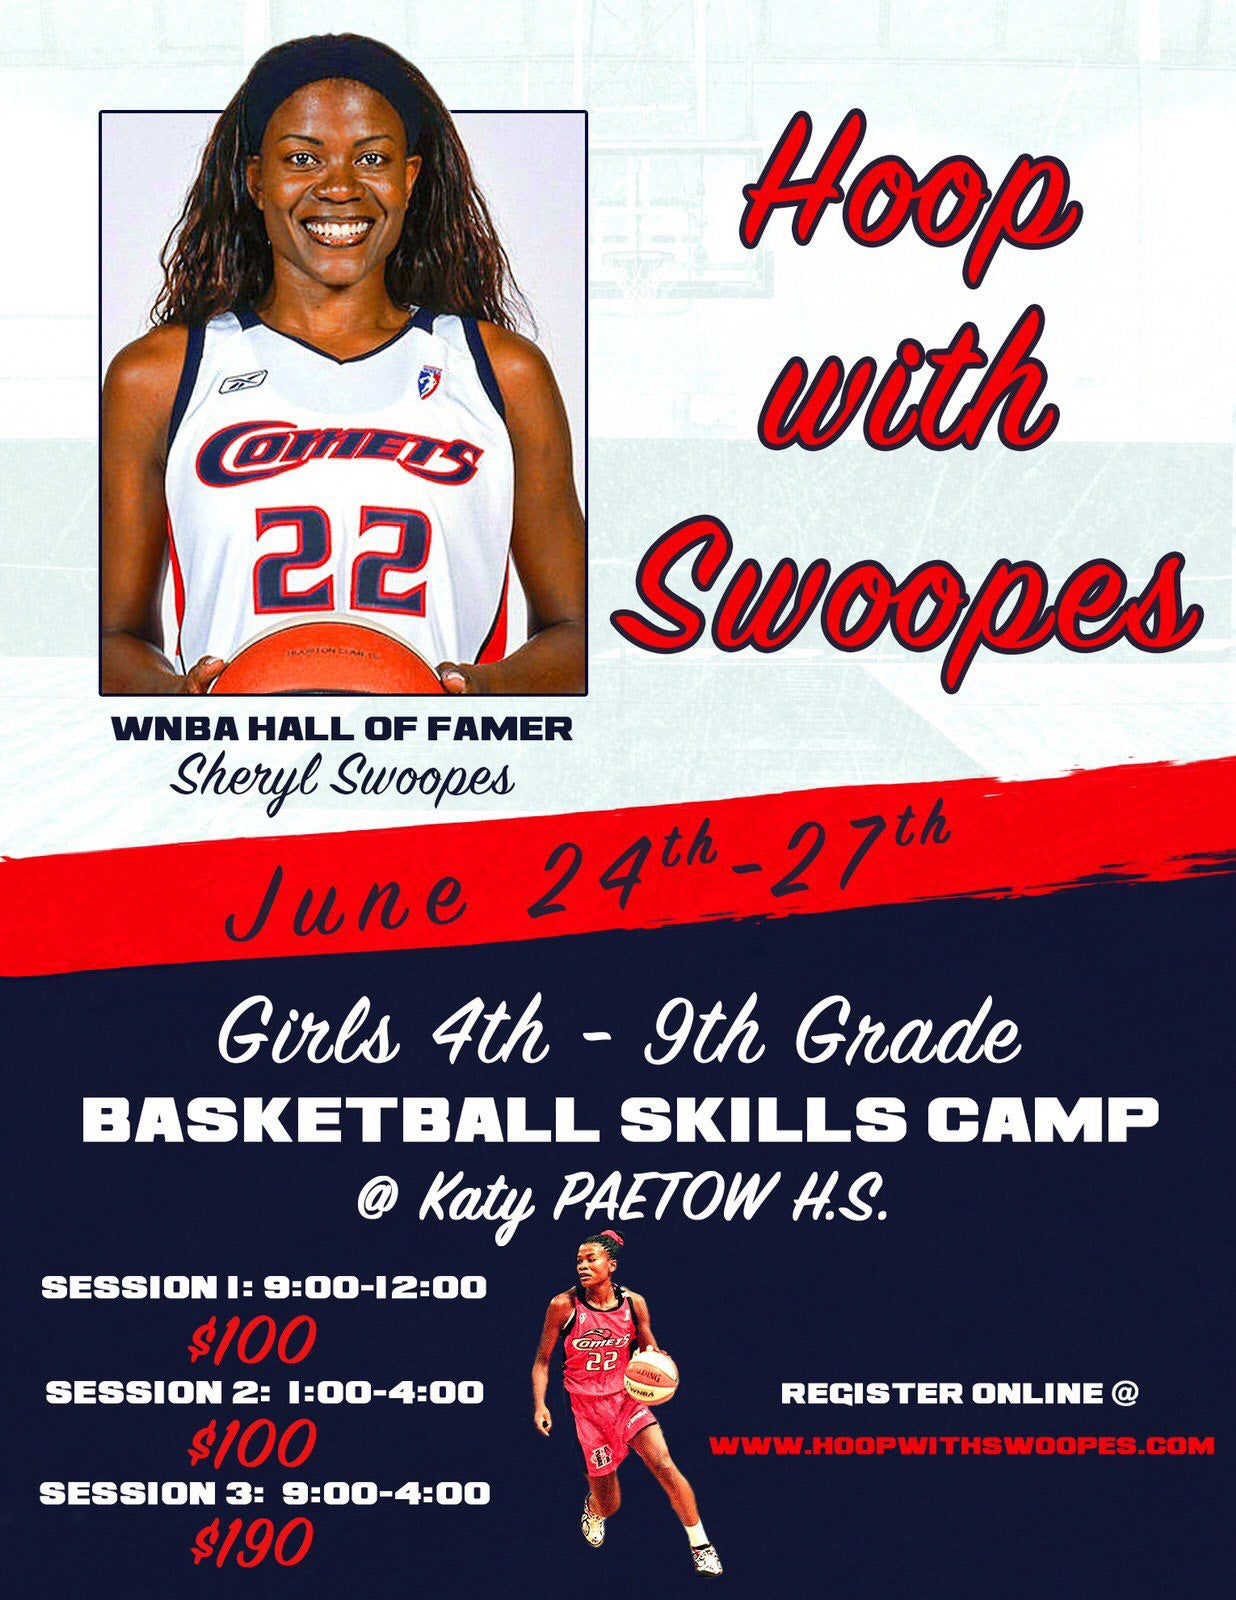 Hoop with Swoopes - Katy, TX June 24 - 27, 2019